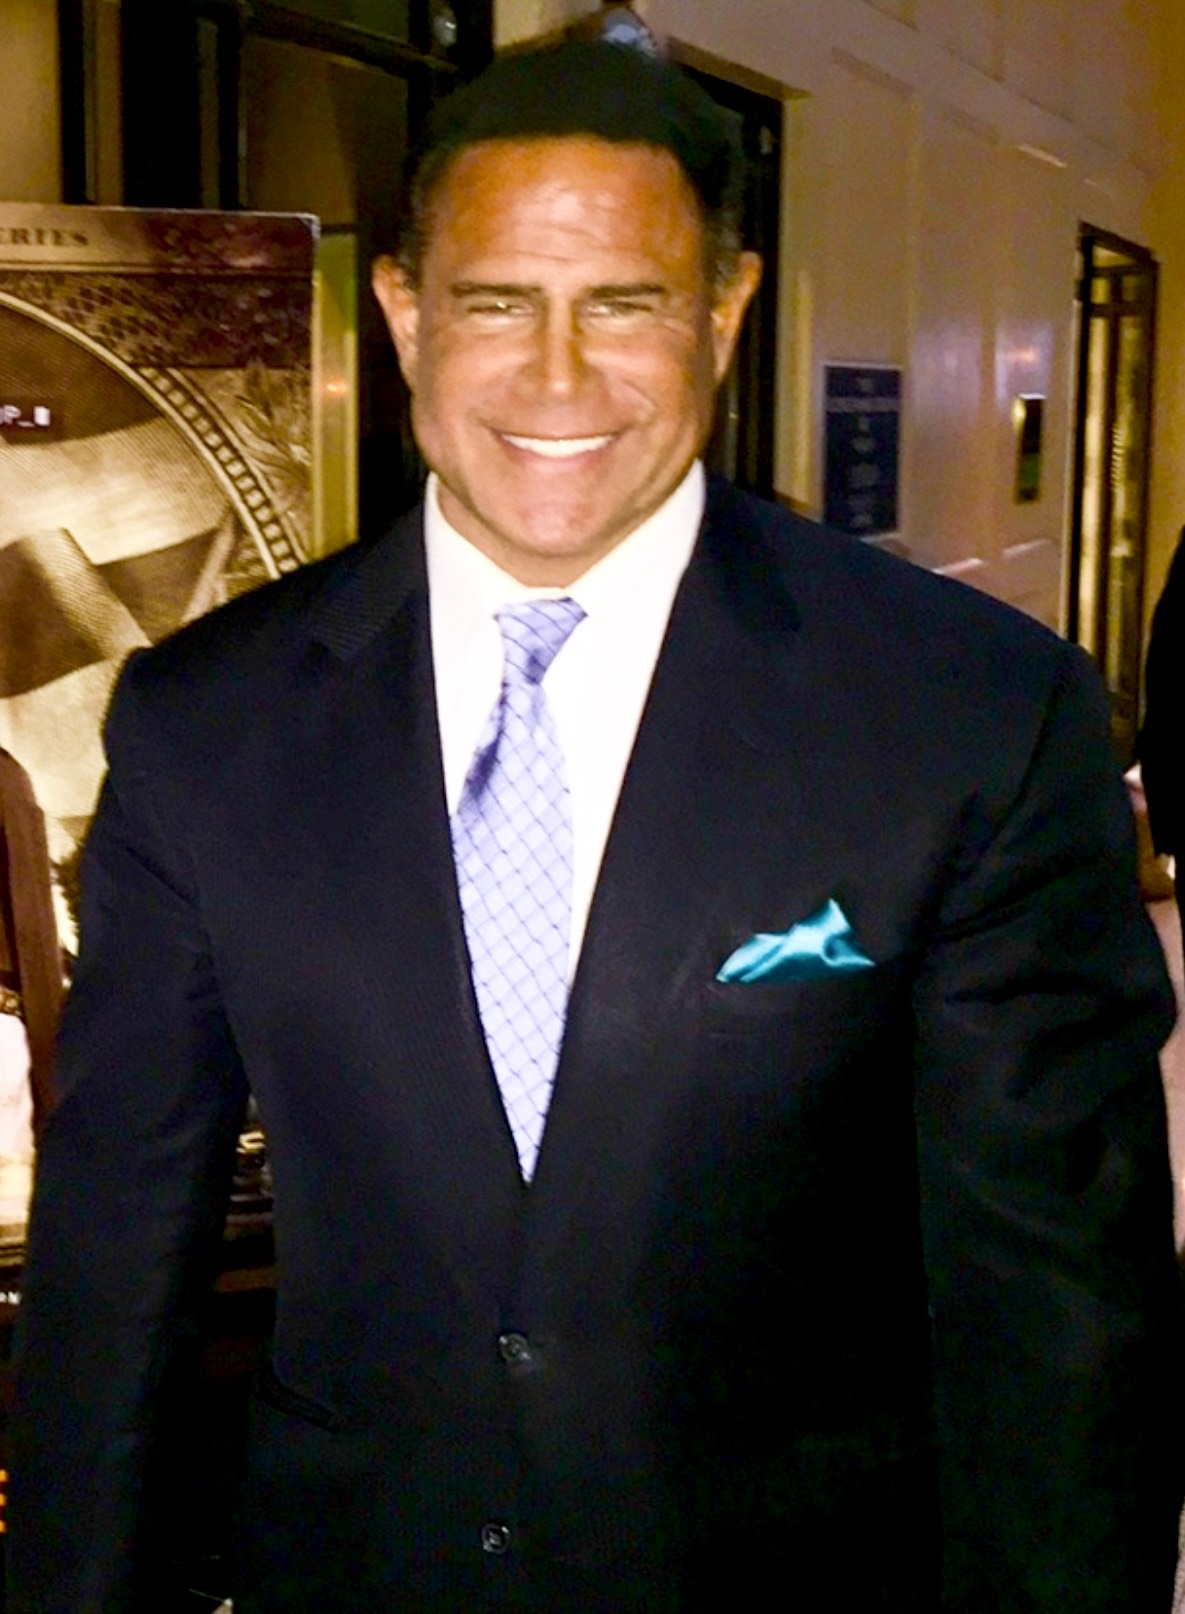 Keith Middlebrook Power, Keith Middlebrook Fitness, Keith Middlebrook Bodybuilder, Keith Middlebrook Bodybuilding, Keith Middlebrook Nutrition, Natural Organic, Keith Middlebrook Wellness, Keith Middlebrook Super Health Secrets, Keith Middlebrook Gym Talk, YouTube.com Keith Middlebrook, Videos Keith Middlebrook, Images Keith Middlebrook, Keith Middlebrook Fans, Keith Middlebrook Fitness, Keith Middlebrook Brand, Keith Middlebrook Fans Followers, Keith Middlebrook Real Estate, Keith Middlebrook Winning Real Estate, The Rock vs The Real Iron Man, Dwayne Johnson The Rock vs Keith Middlebrook The Real Iron Man, Flickr Keith Middlebrook, Getty Images Keith Middlebrook, Tumblr Keith Middlebrook, Pinterest Keith Middlebrook, X Men Keith Middlebrook, Iron Man Keith Middlebrook, Net Worth Keith Middlebrook, Fandango Keith Middlebrook, Marvel Keith Middlebrook, Ballers Keith Middlebrook, IMDB.com Keith Middlebrook, IMDB Keith Middlebrook, The Event Keith Middlebrook, Castle Keith Middlebrook, Floyd Mayweather Keith Middlebrook, Keith Middlebrook Floyd Mayweather, Dwayne Johnson Keith Middlebrook, Keith Middlebrook Dwayne Johnson, Keith Middlebrook Reverse Aging, Keith Middlebrook Reverse Aging Technology, Keith Middlebrook Iron Man Rover Vehicle, Keith Middlebrook Iron Man Industries, Super Wealth, Super Health, Super Wealth Super Health, Keith Middlebrook Teleporting, Keith Middlebrook Teleportation, Keith Middlebrook Ferrari, Keith Middlebrook Lamborghini, Keith Middlebrook Gulfstream, The Real Iron Man Keith Middlebrook, Keith Middlebrook is Winning, Keith Middlebrook Won, Successful Entrepreneur Keith Middlebrook, Super Entrepreneur Icon Keith Middlebrook,